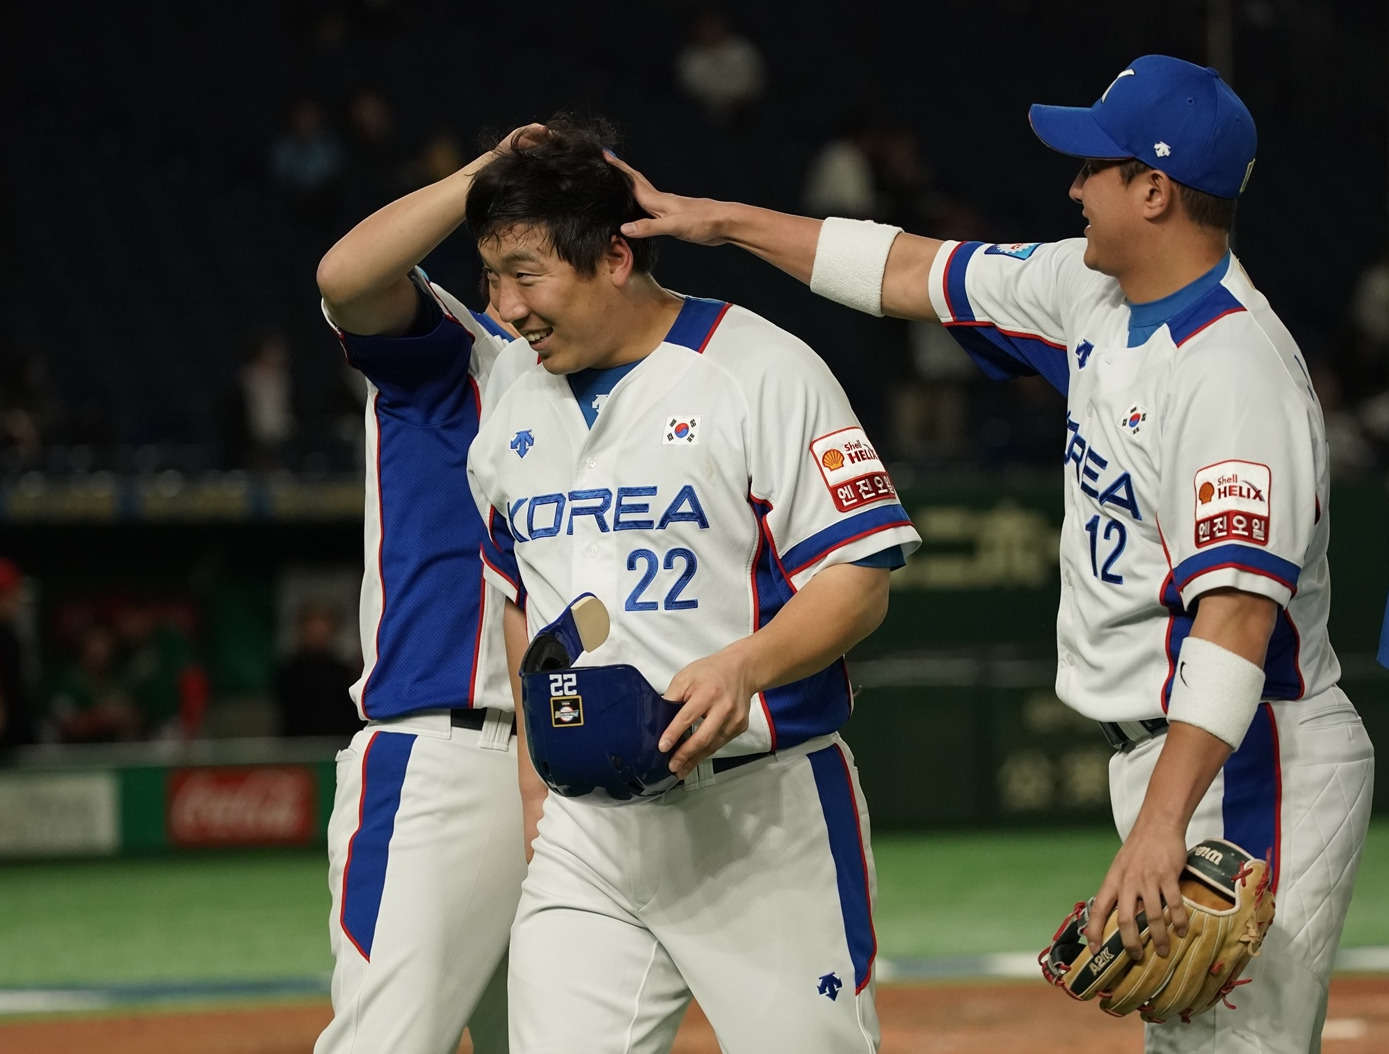 Kim Hyunsoo congratulated after his bases clearing double